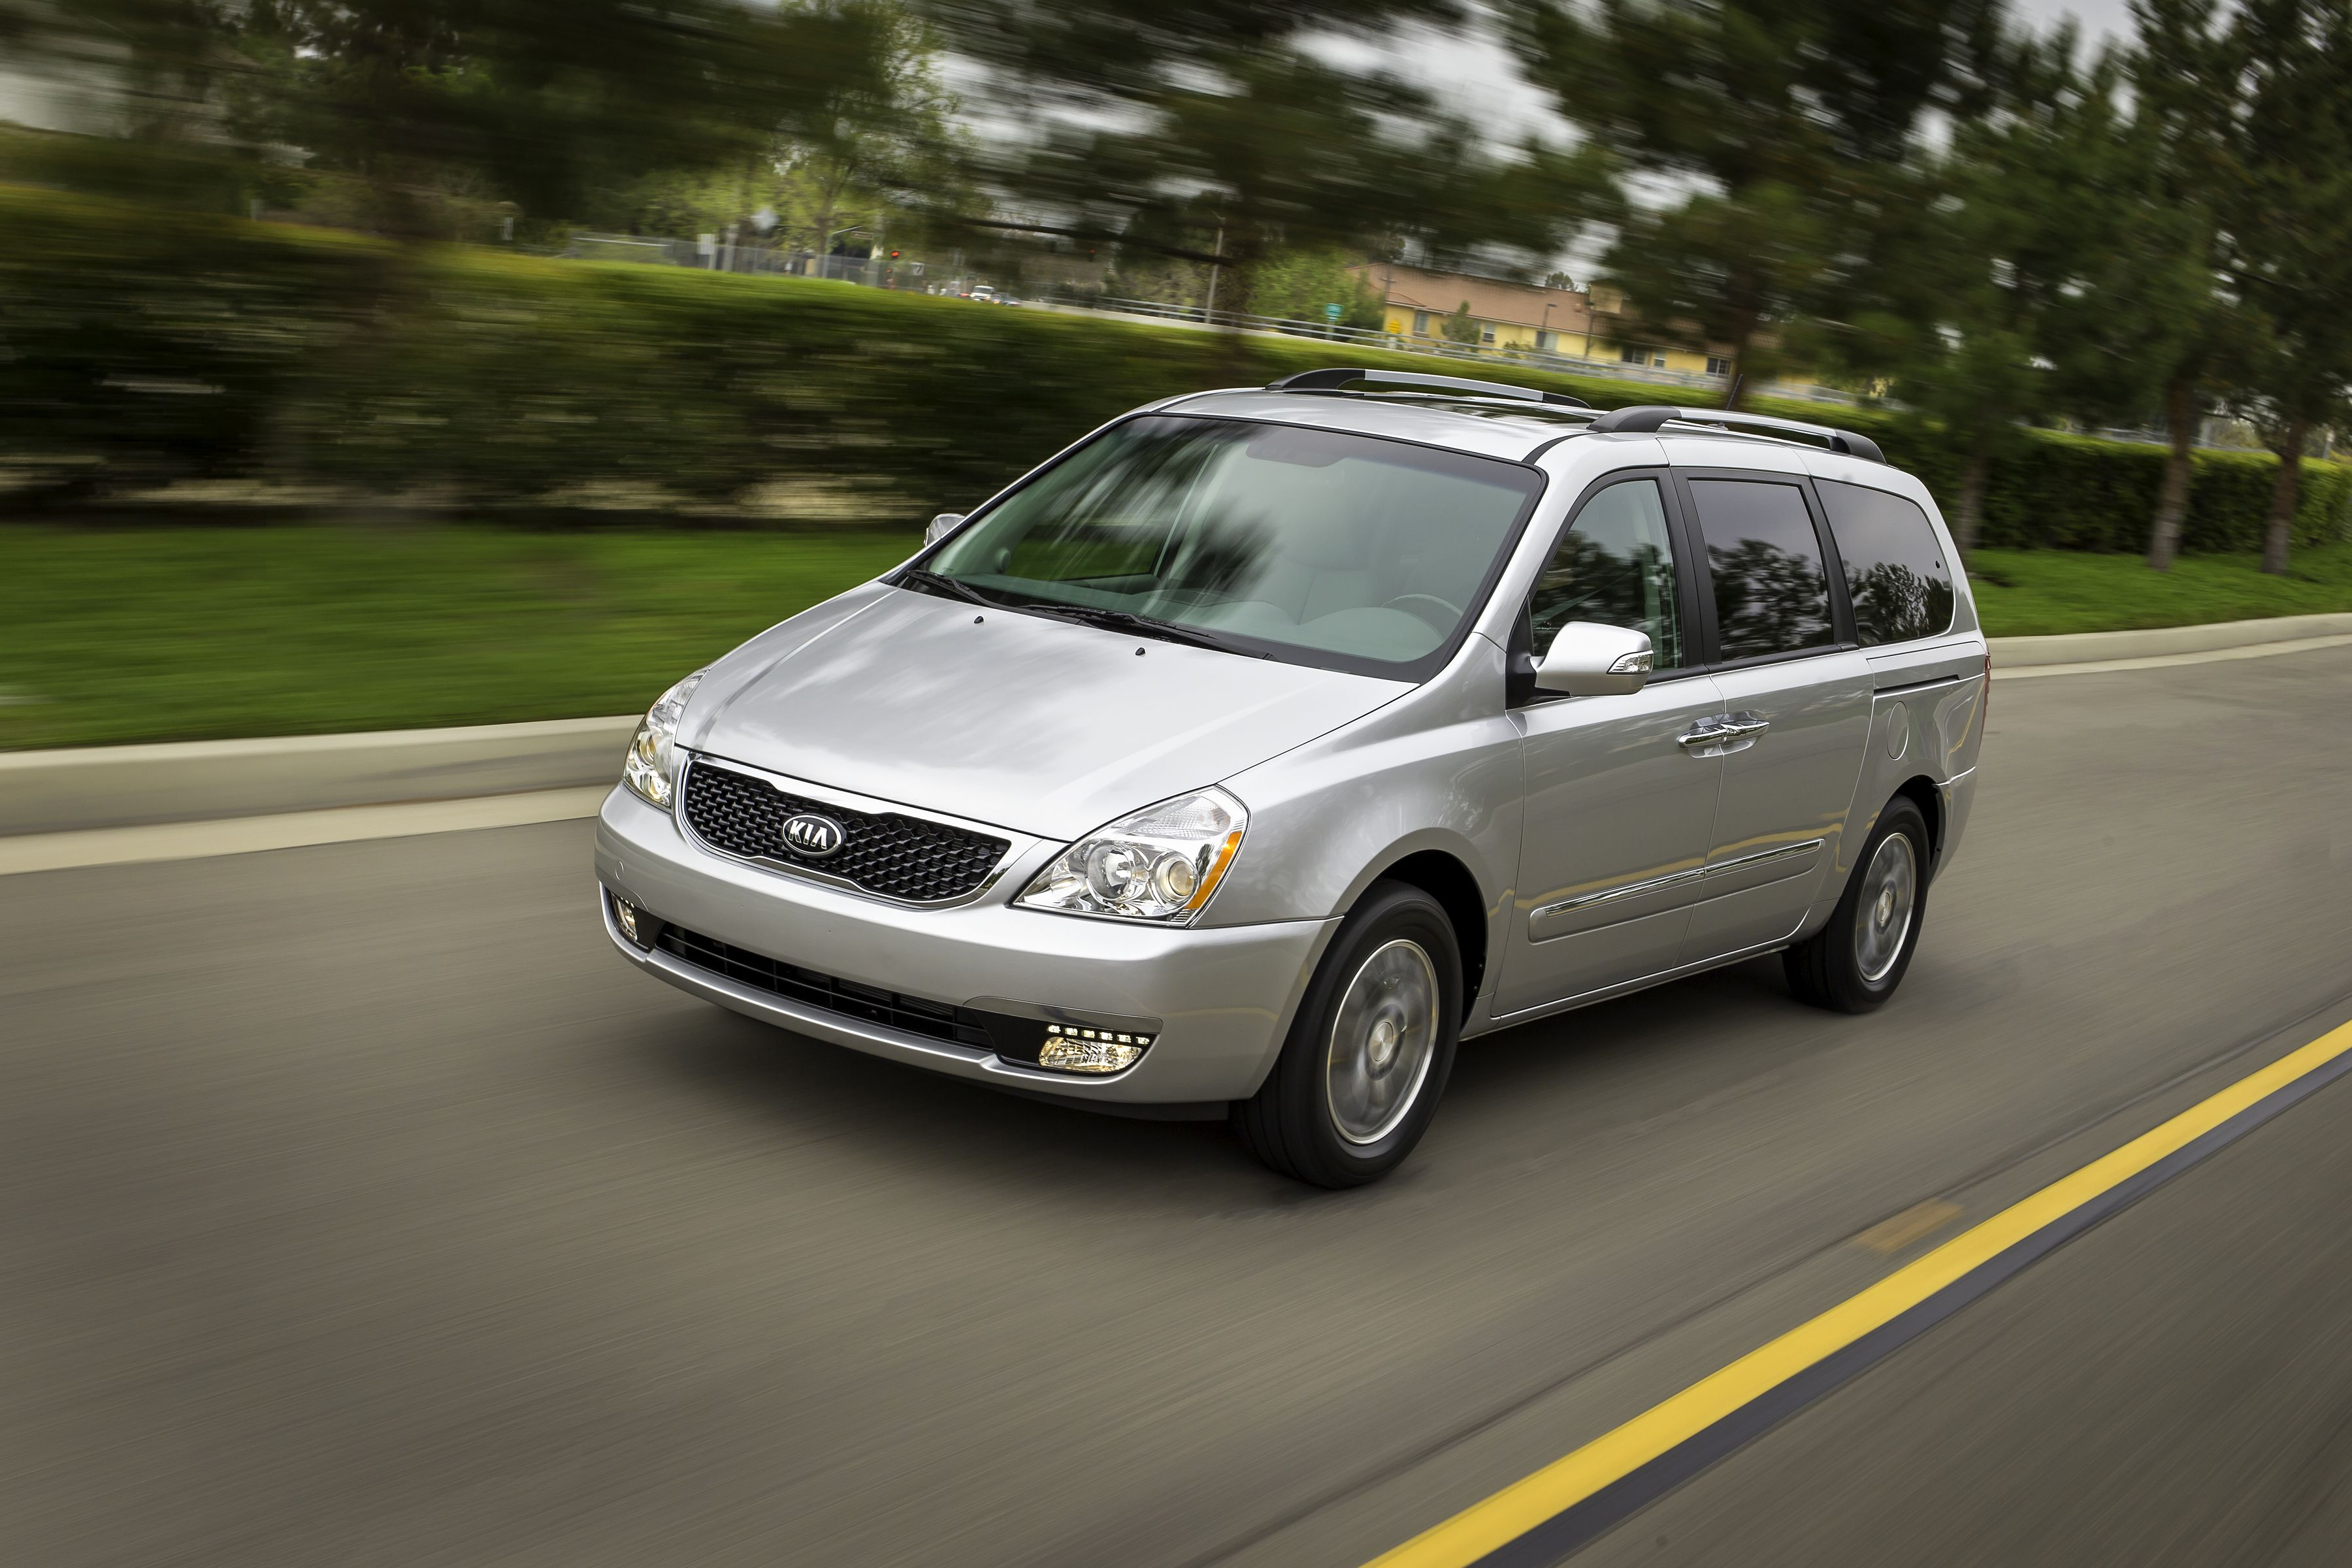 The Sedona earns National Highway Traffic Safety